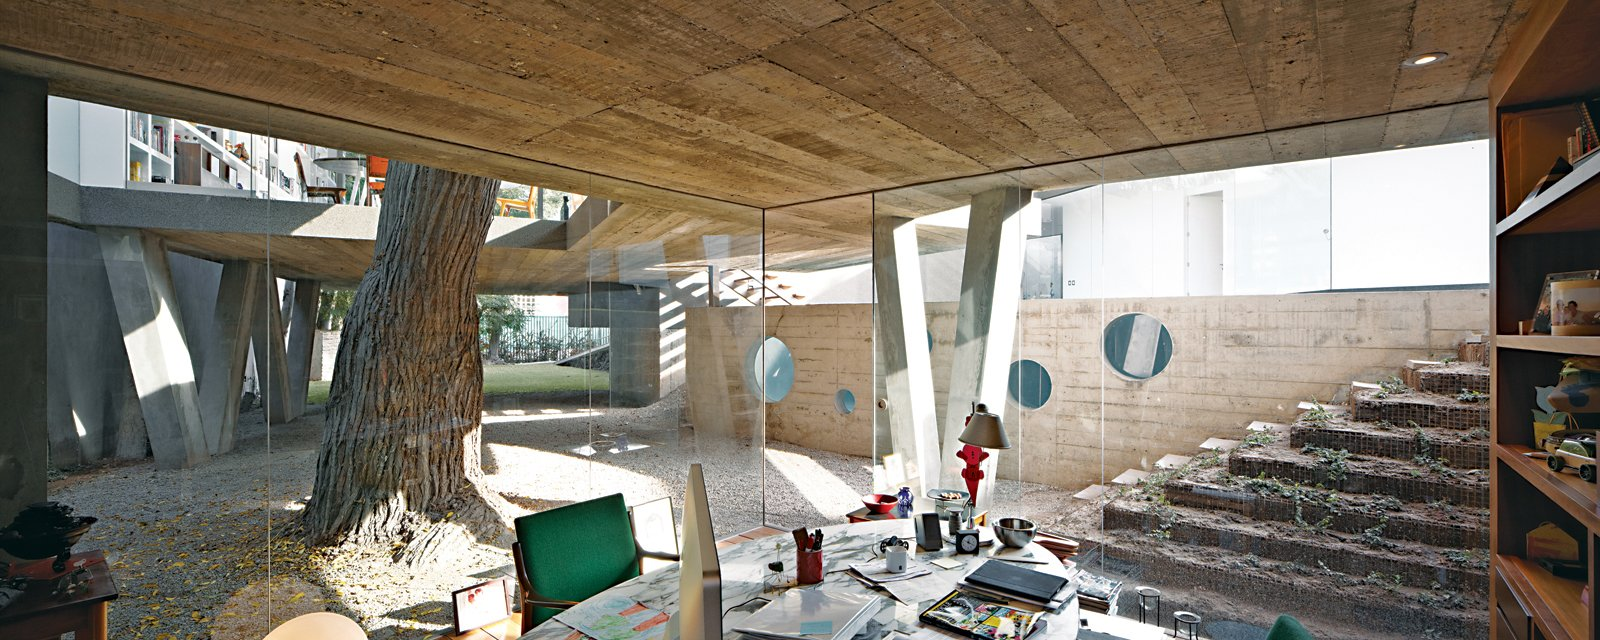 For a family in Lima, a team from local firm 51-1 Arquitectos built Casa Serpiente, which meanders around 25 existing trees. Husband Irzio's study is among the few ground-level rooms in the 4,300-square-foot house. A Modern Concrete Home in Peru - Photo 2 of 13